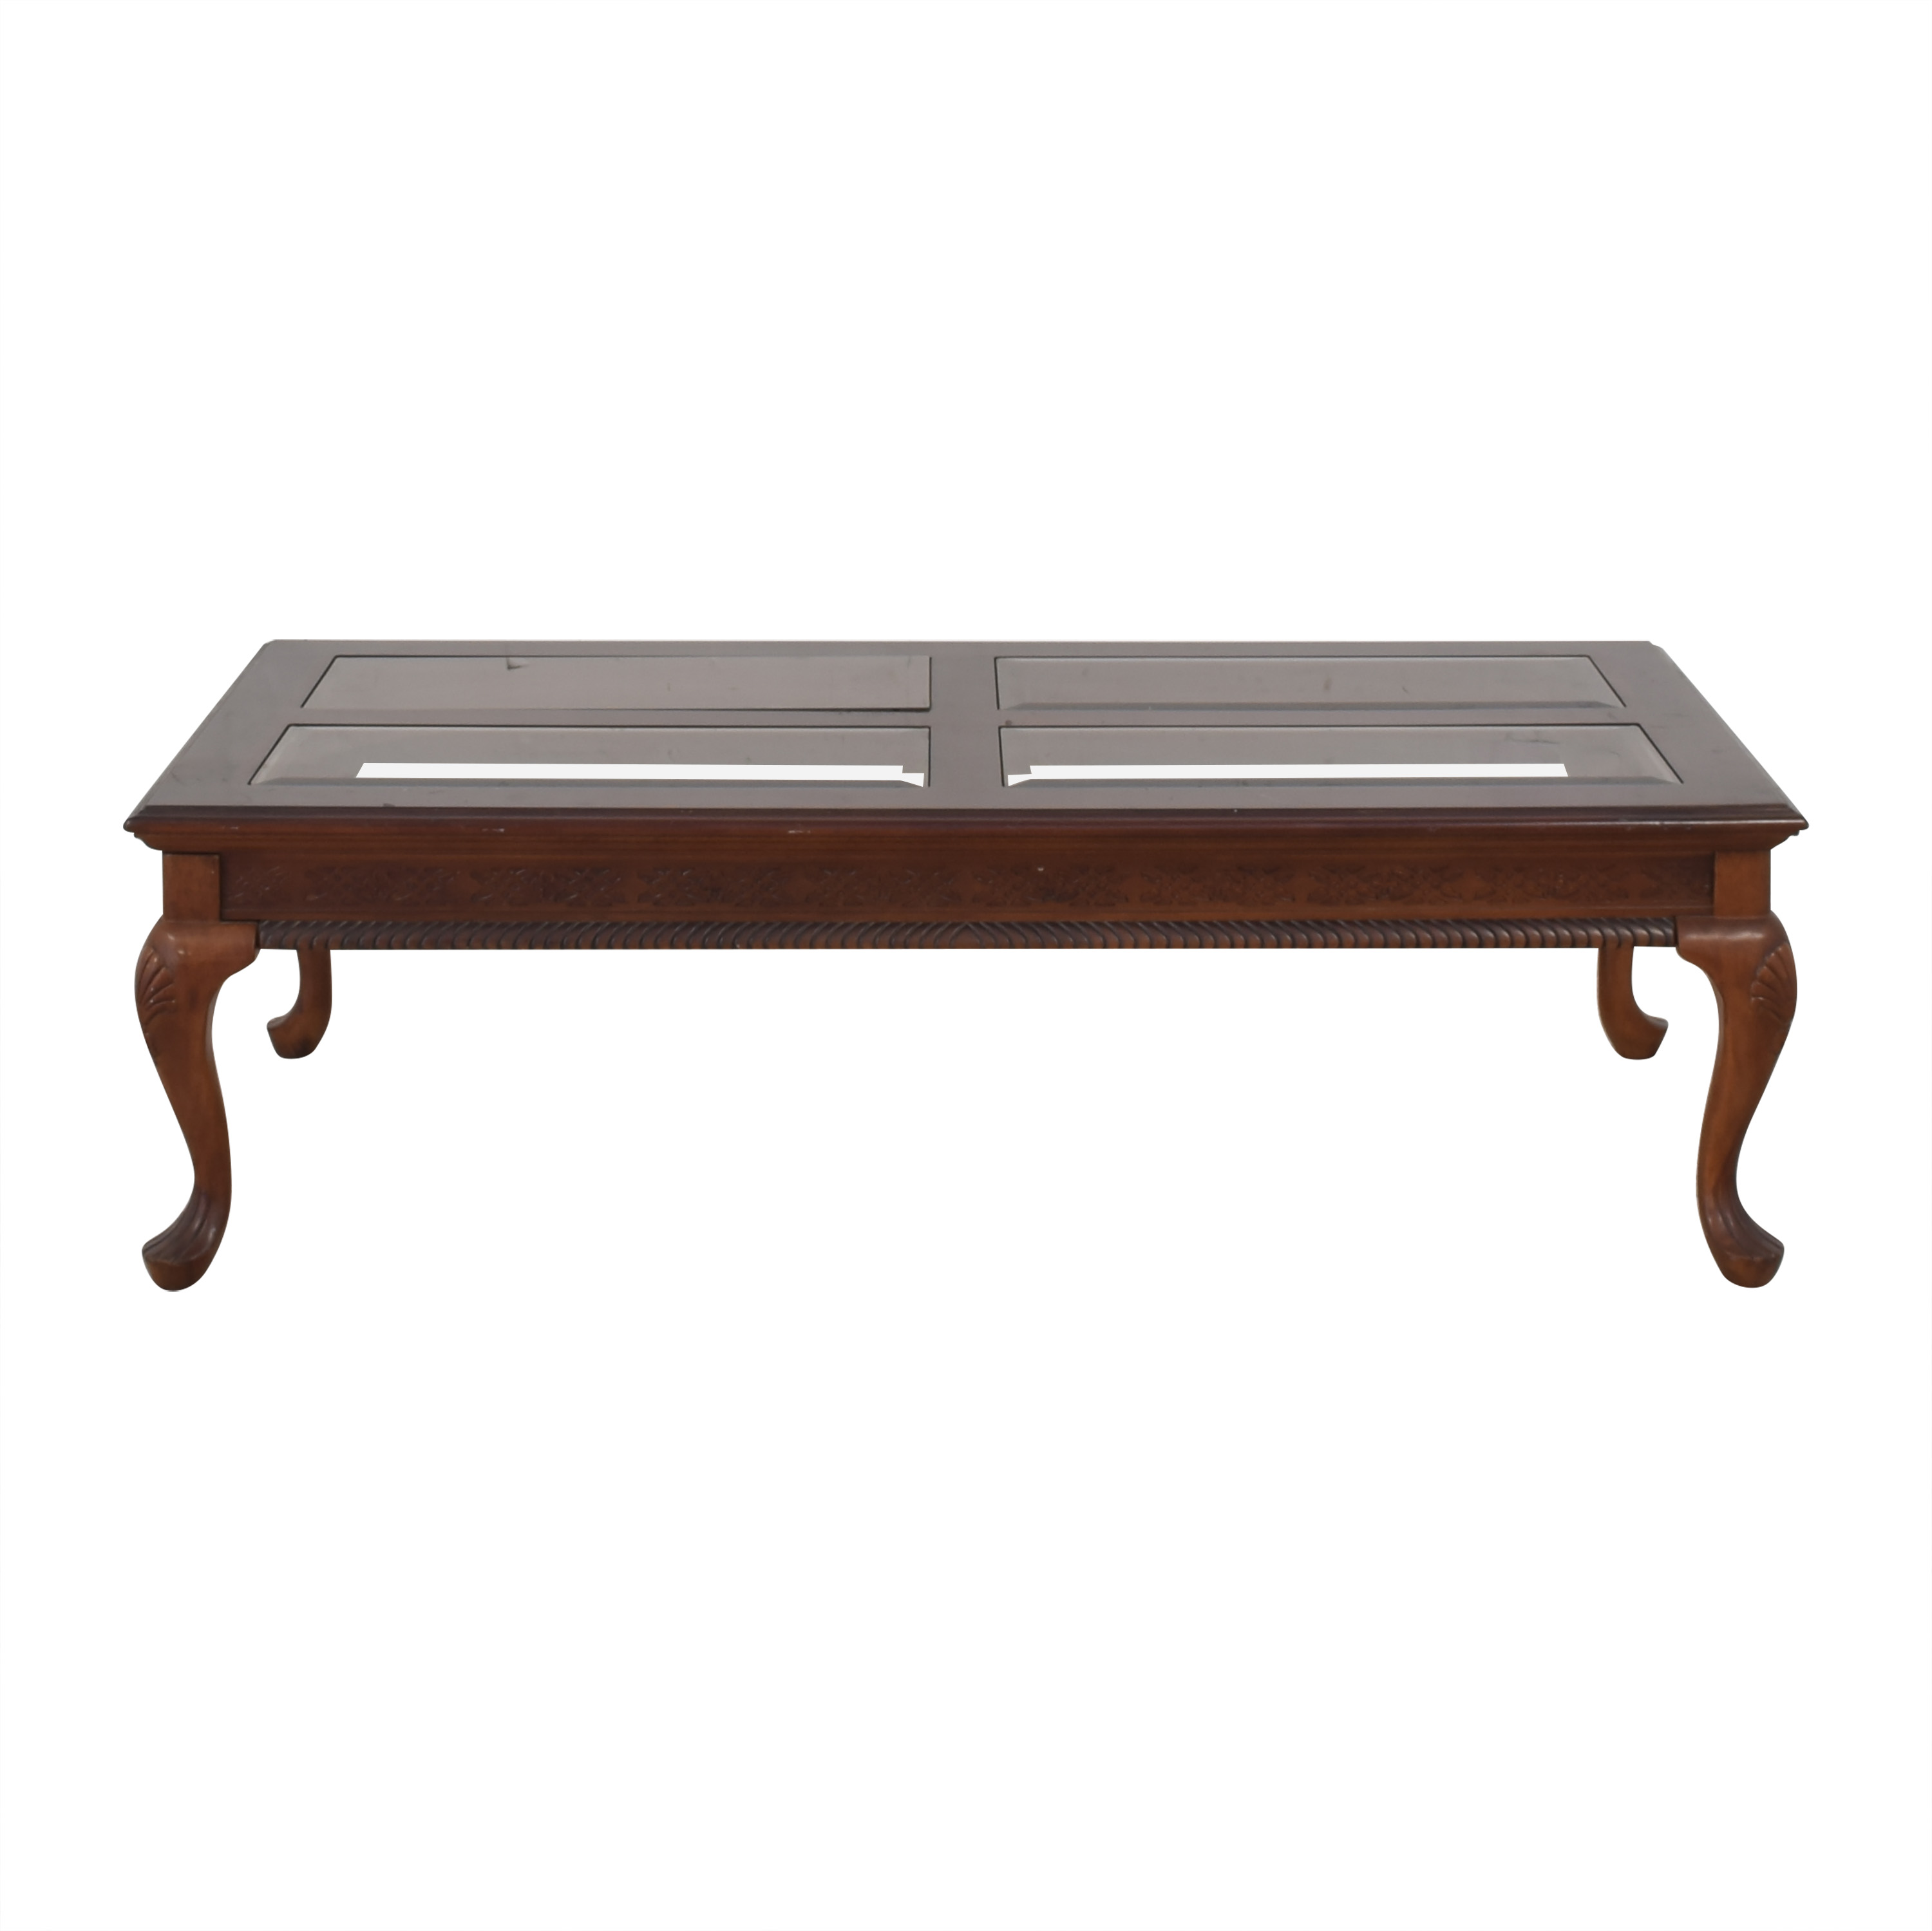 51 off glass top coffee table tables